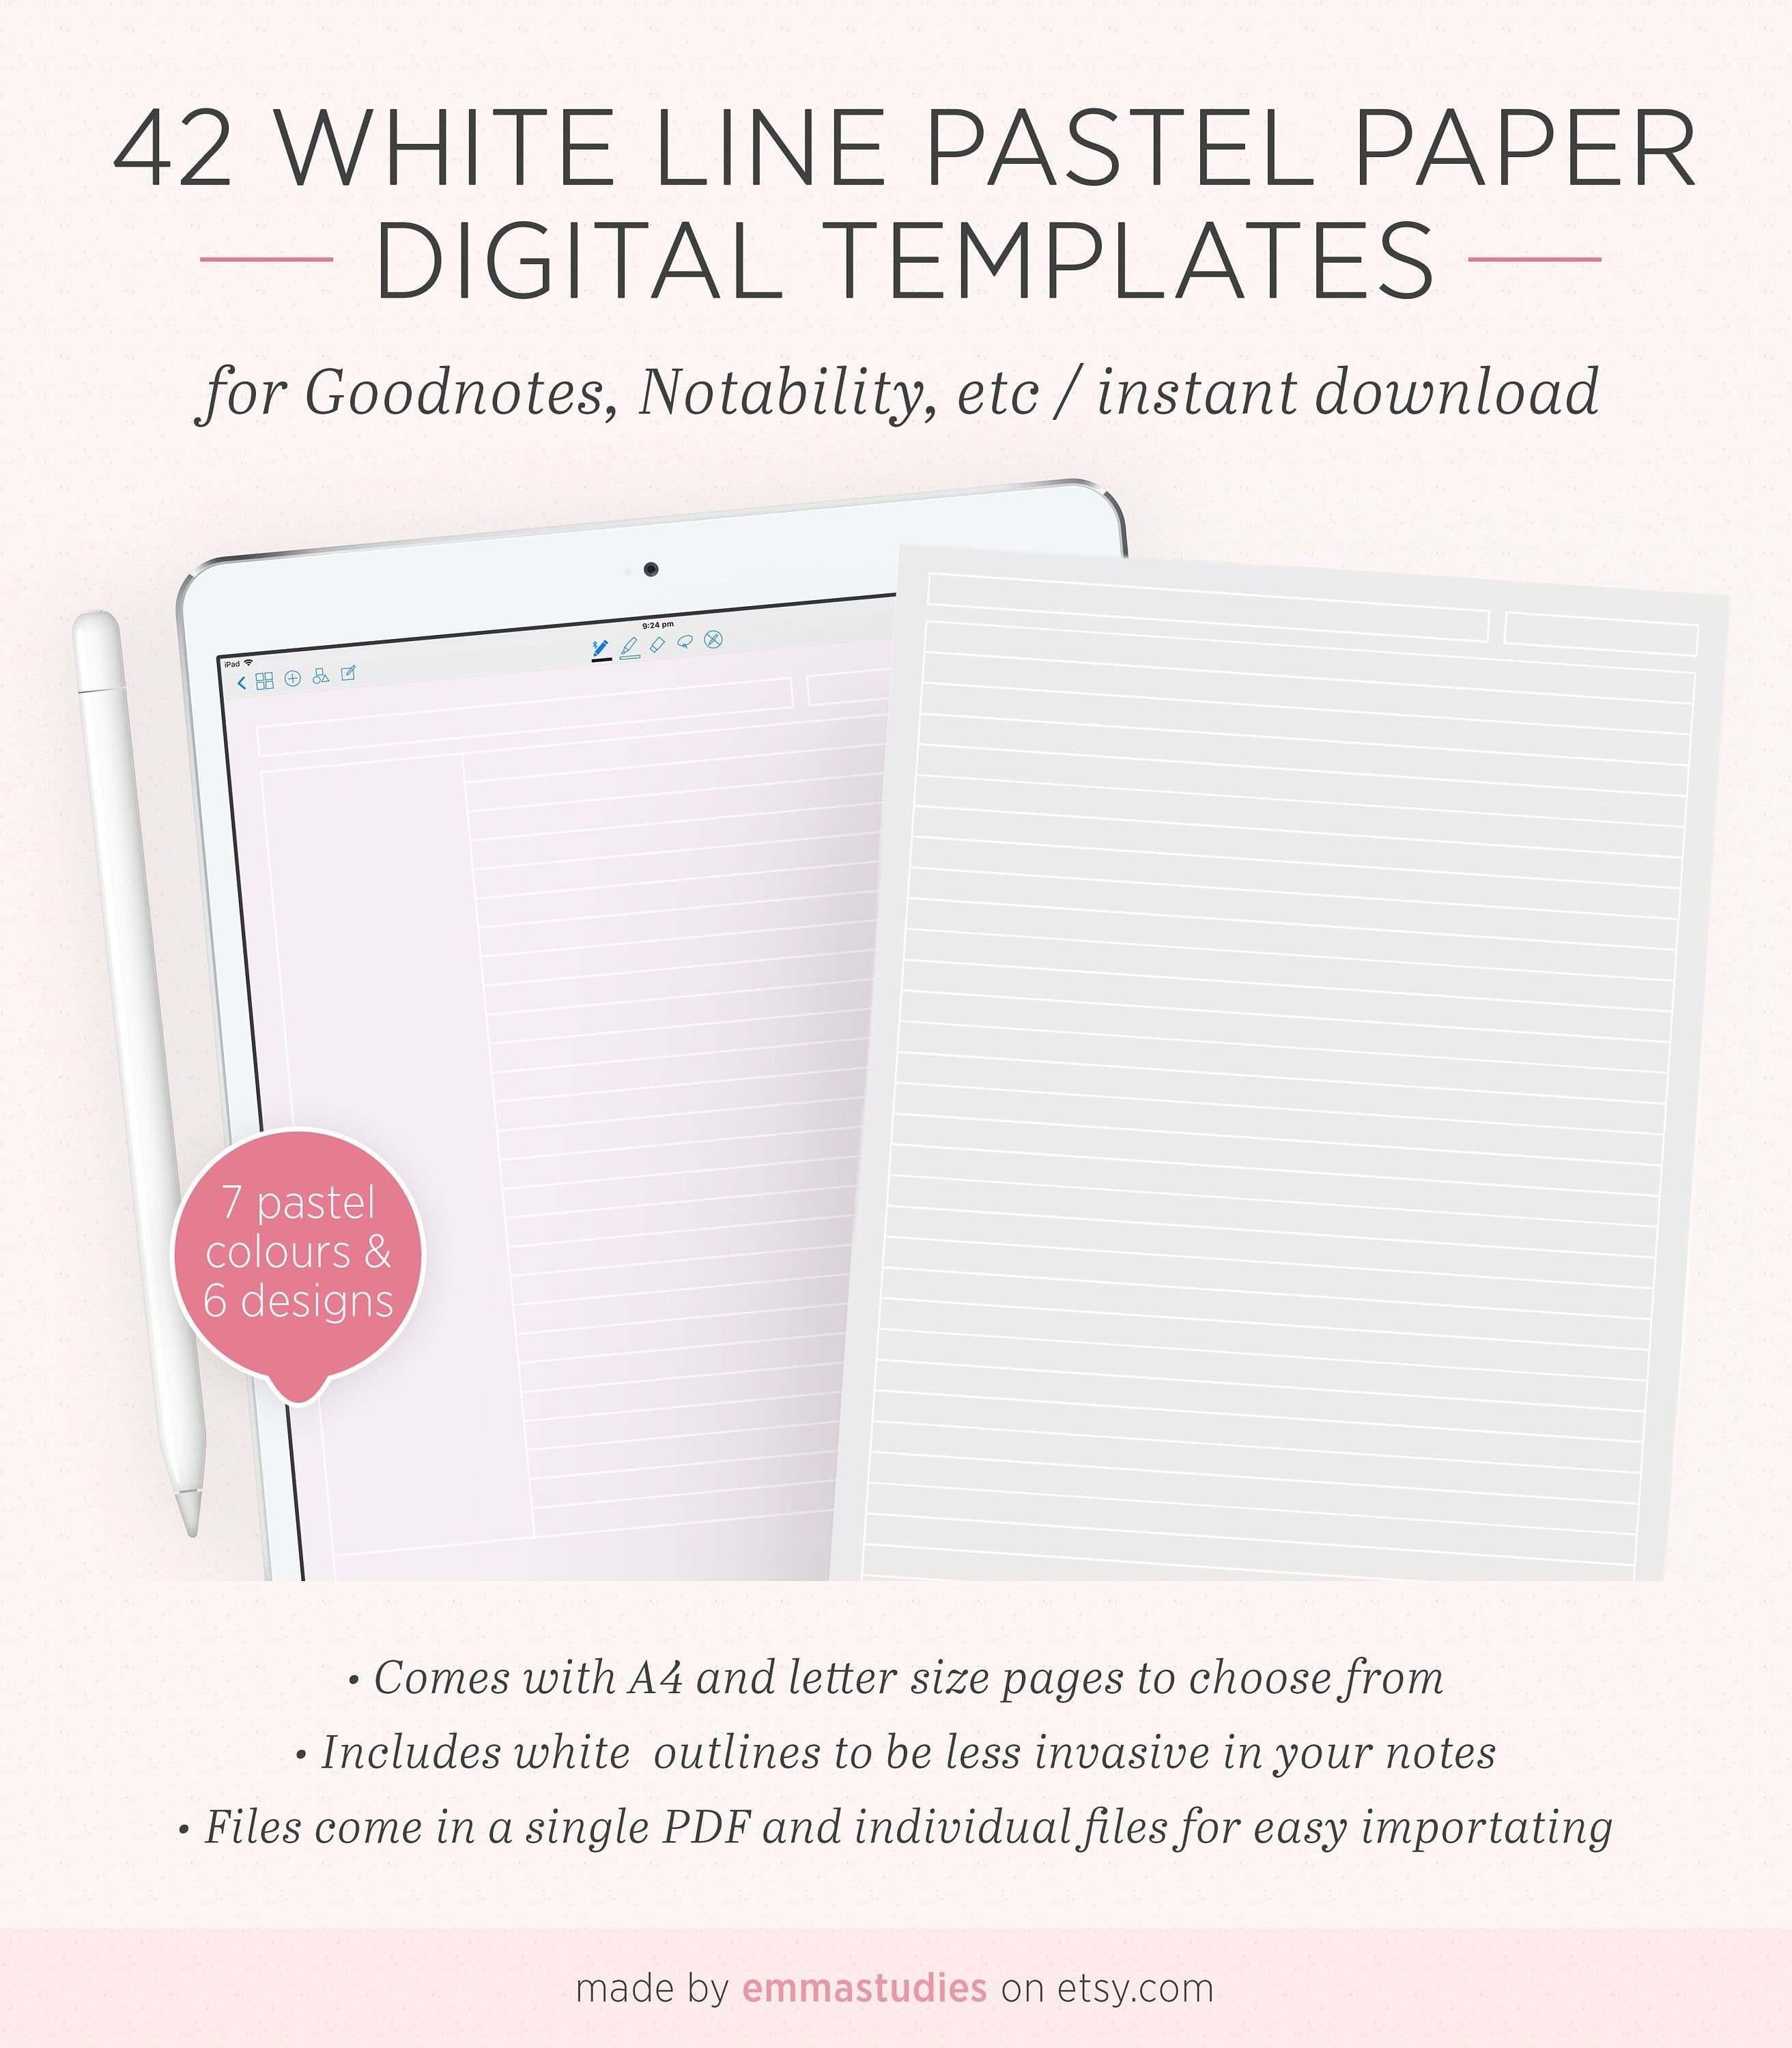 Digital Note Taking Pastel Paper Template Goodnotes Notability Ipad Tablet Lined Grid Dotted Cornell College Notebook Pages A4 Letter Paper Template Notability Ipad College Notebook